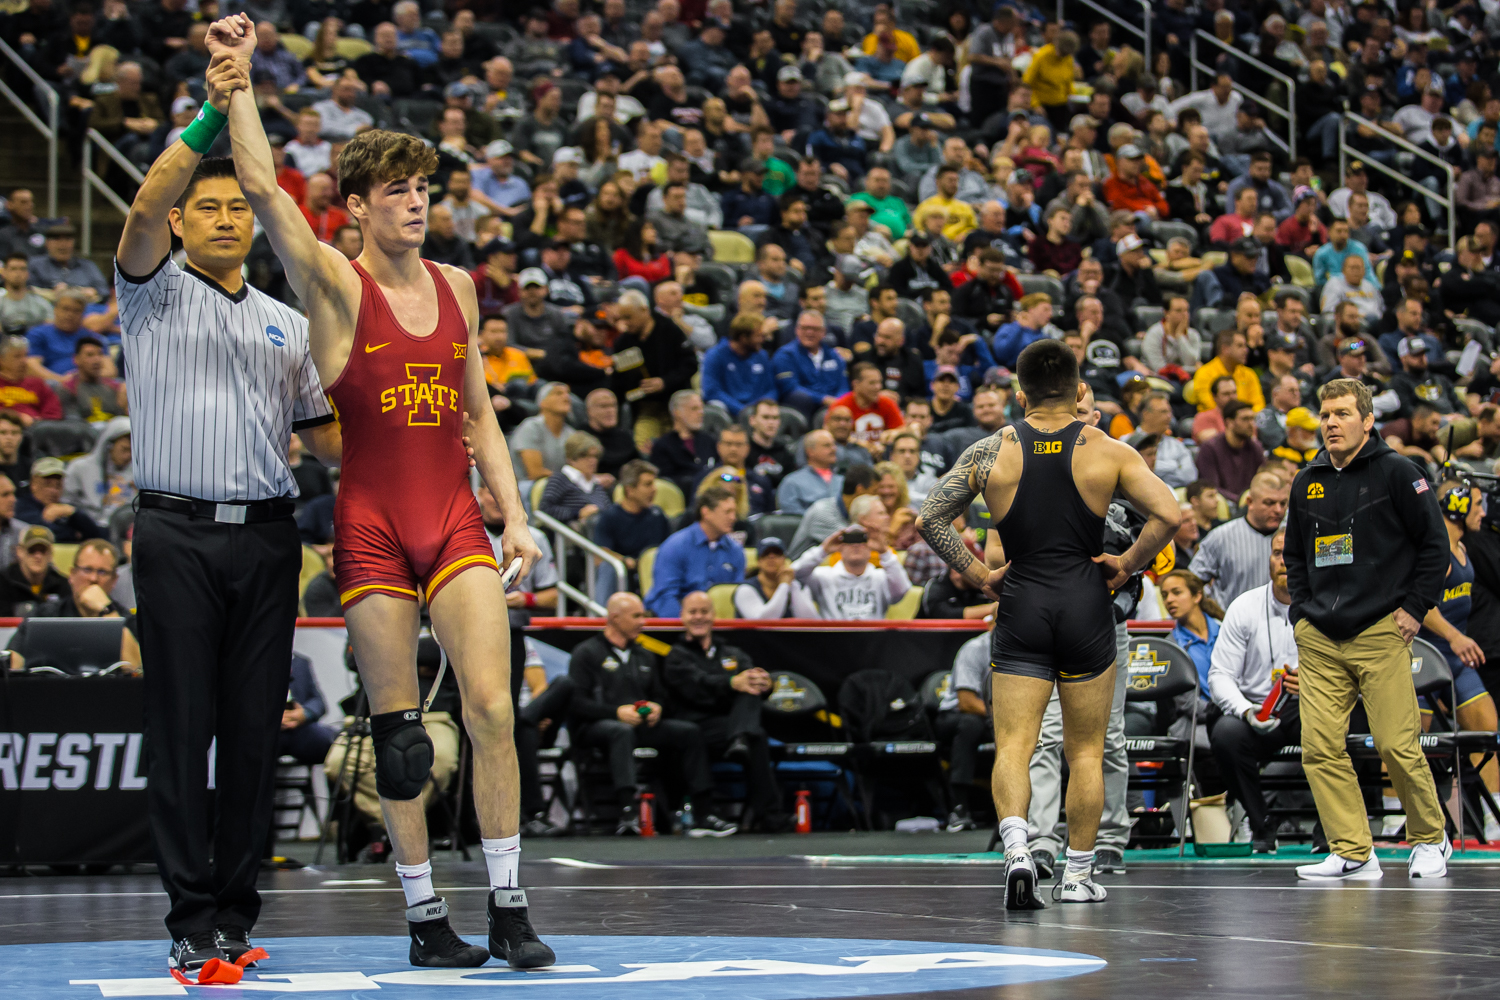 Iowa+State%E2%80%99s+Jarrett+Degen+defeats+Iowa%E2%80%99s+149-pound+Pat+Lugo+during+the+fifth+session+of+the+2019+NCAA+D1+Wrestling+Championships+at+the+PPG+Paints+Arena+in+Pittsburgh%2C+PA+on+Saturday%2C+March+23%2C+2019.+Degen+won+by+decision%2C+11-9%2C+and+earned+seventh+in+the+weight+class.